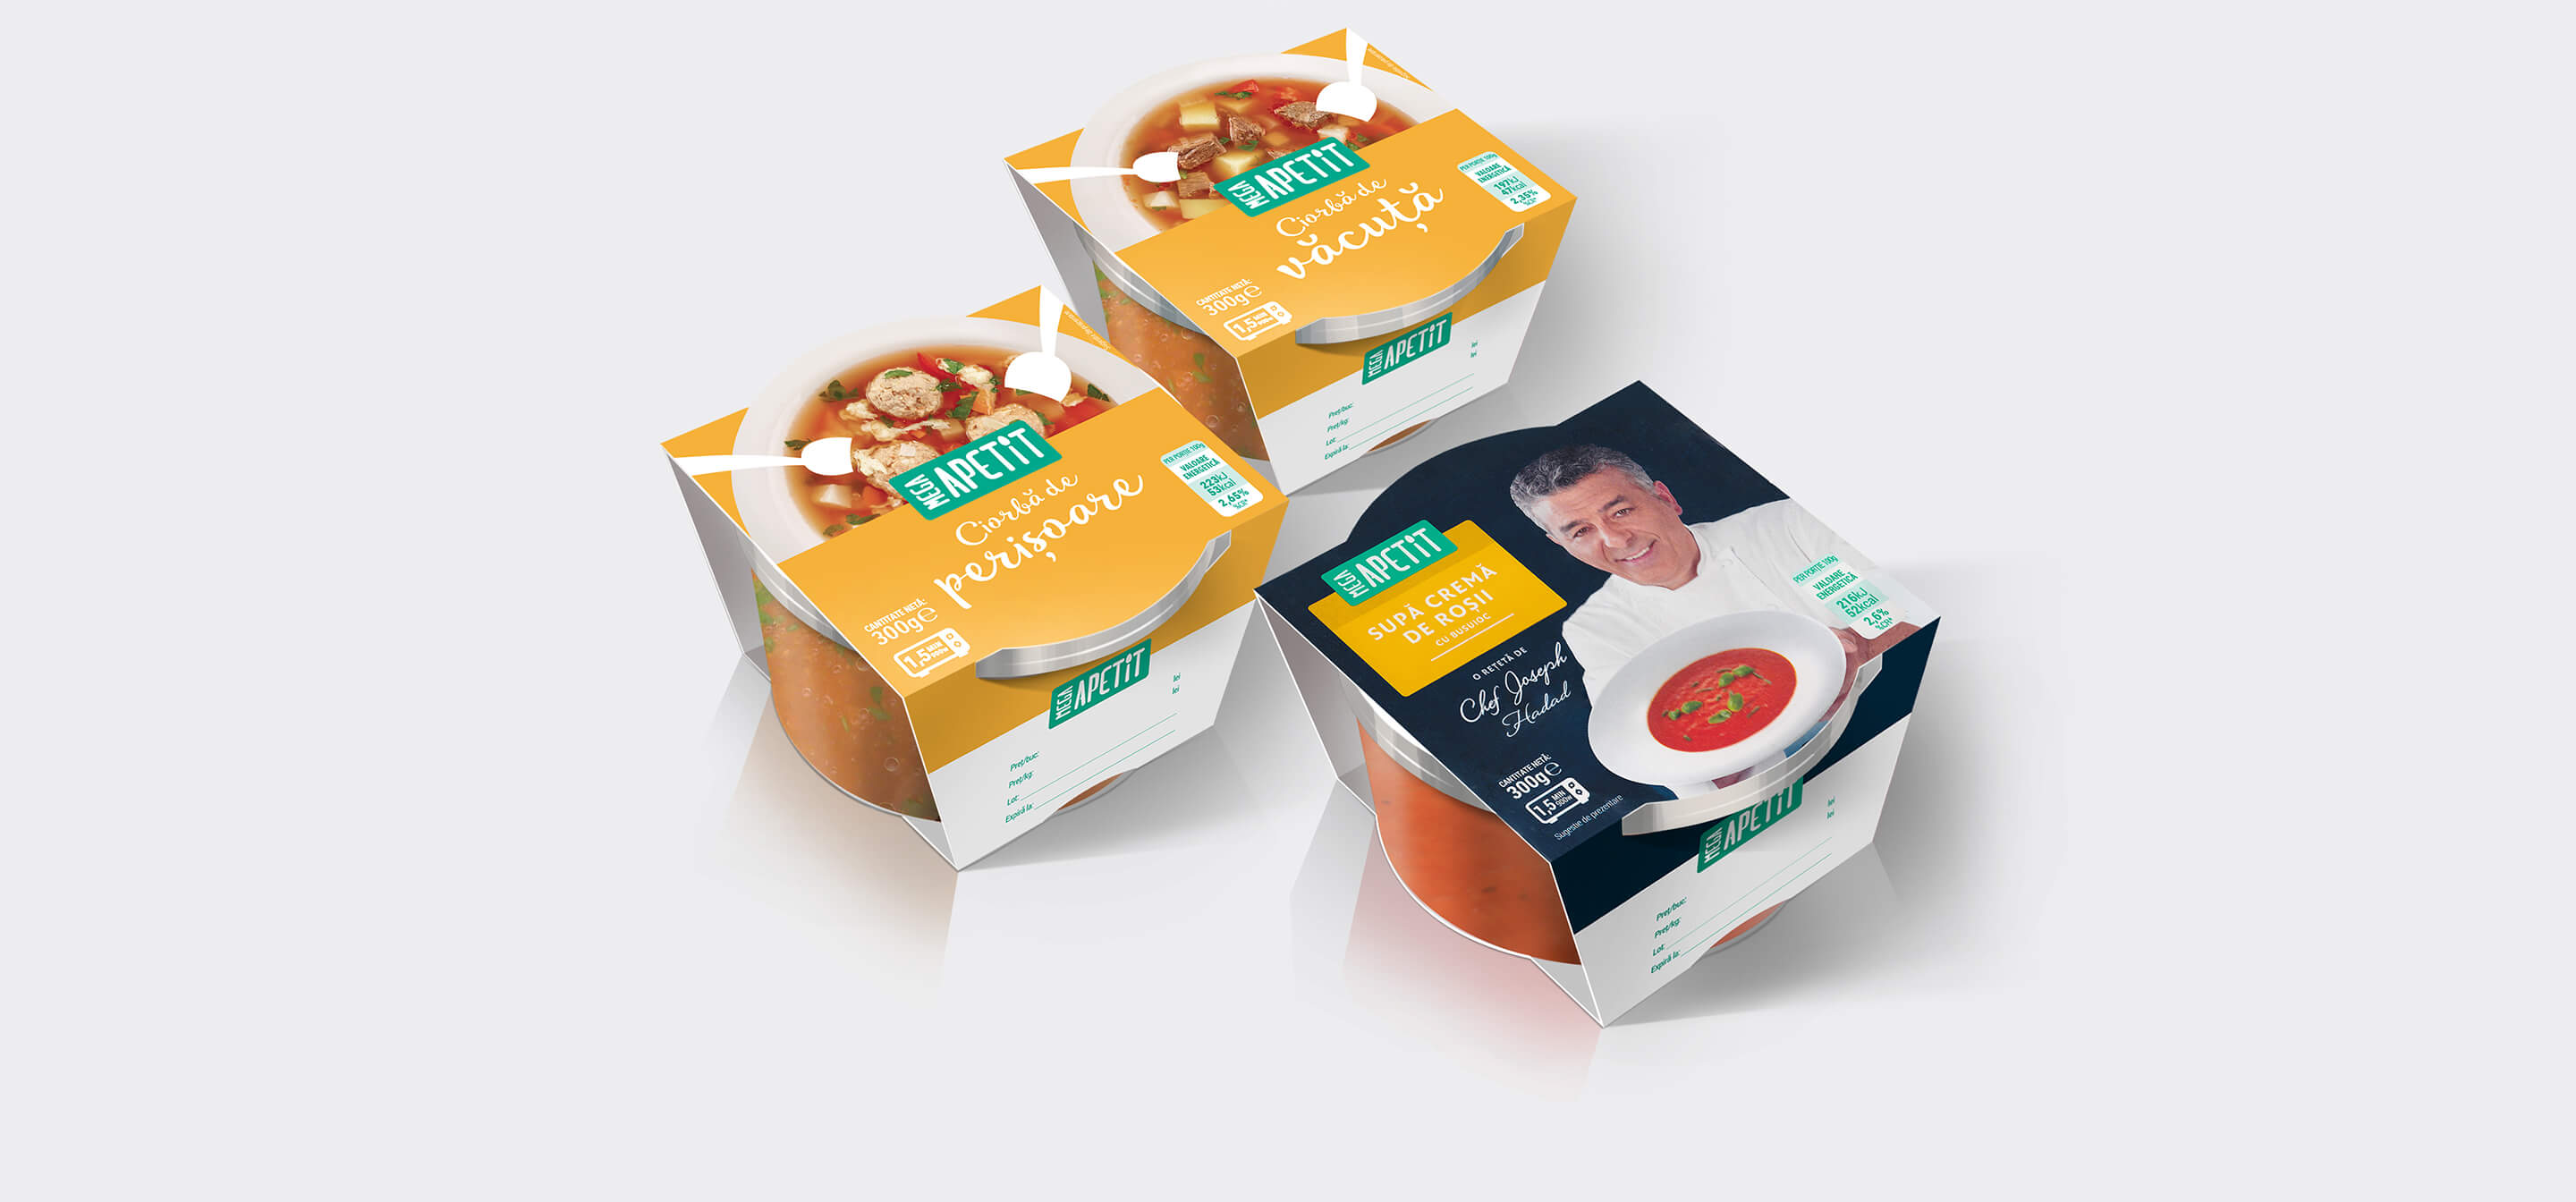 Mega Apetit soup packaging